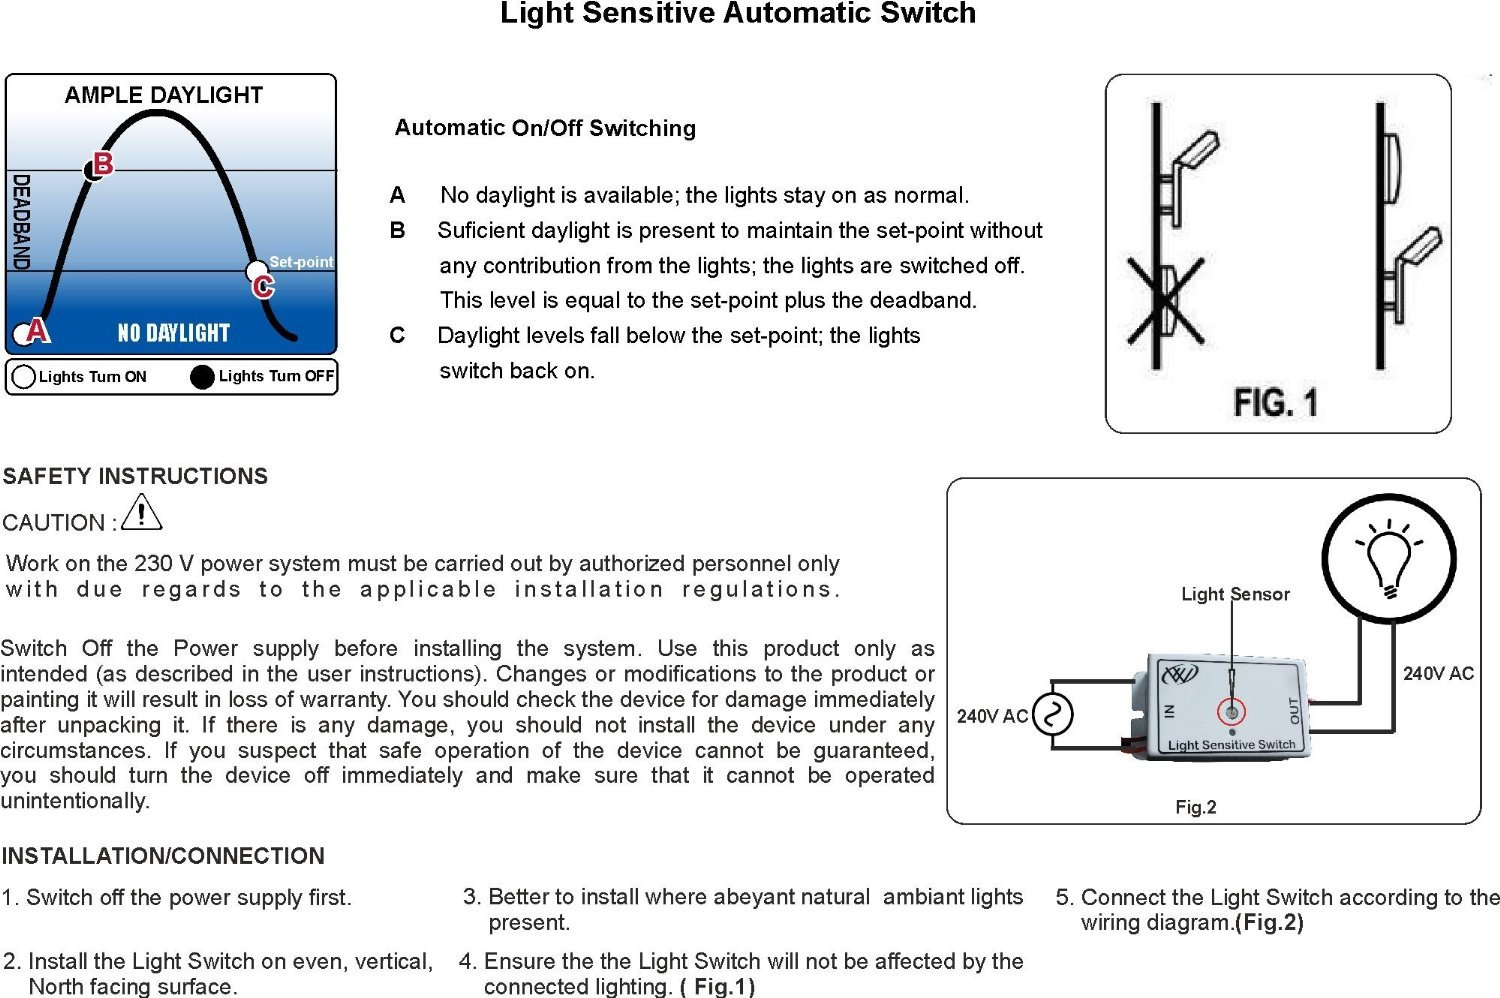 Day Night Switch Light Sensor Automatic Home Wiring Diagram Lights In Series Automation